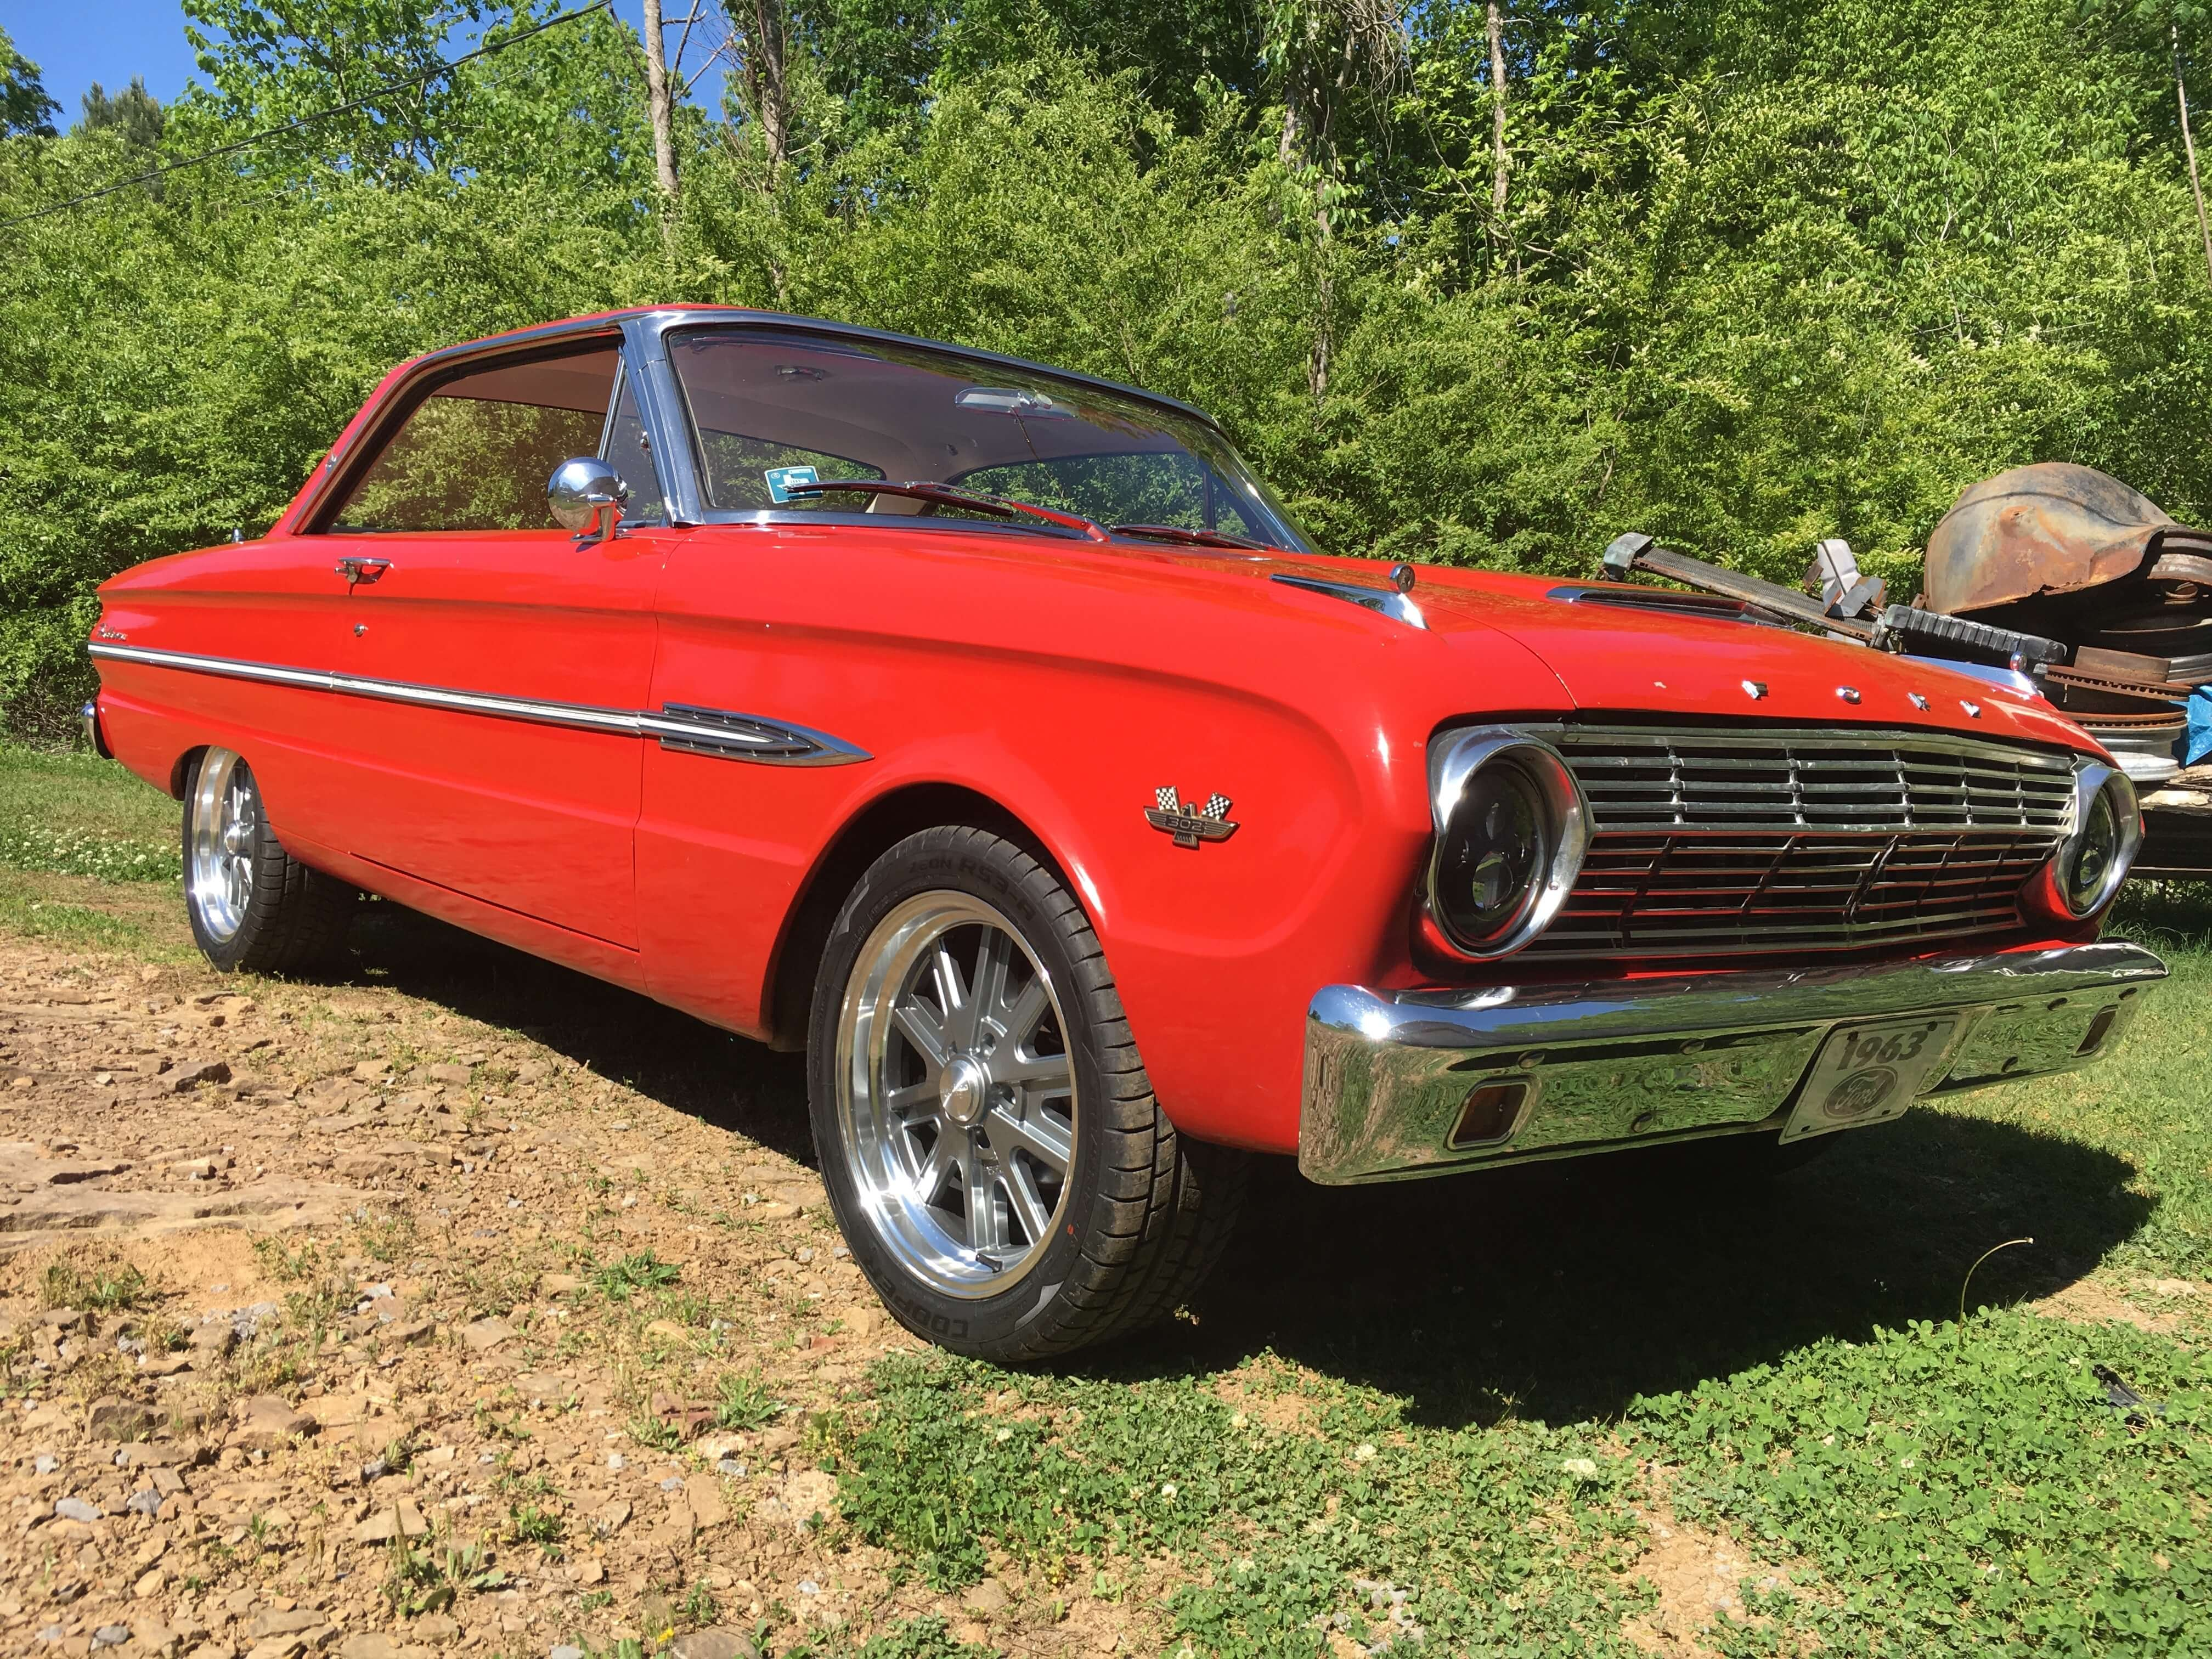 Ed's 1963 Ford Falcon - Holley My Garage